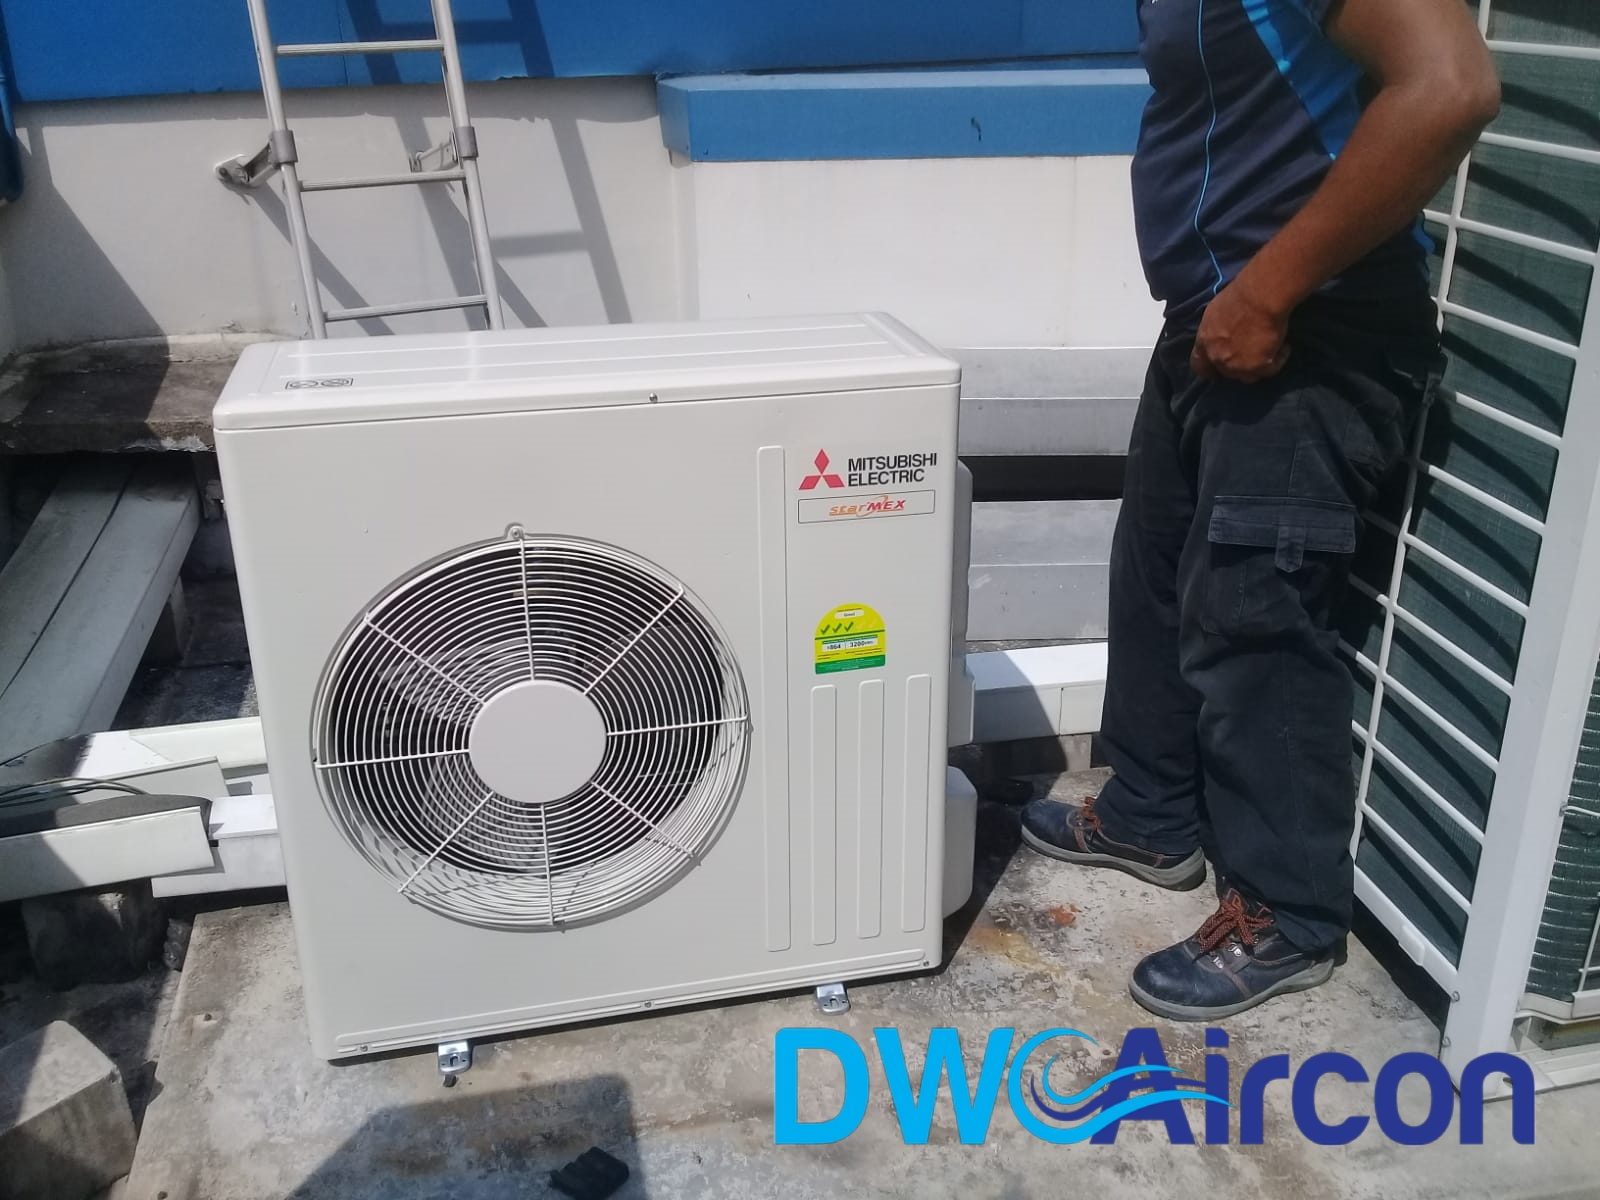 Dw Aircon Servicing Singapore Reliable Repair Service Ac Circuit Board Prices Air Conditioner Condenser Replacement Commercial Building Woodlands